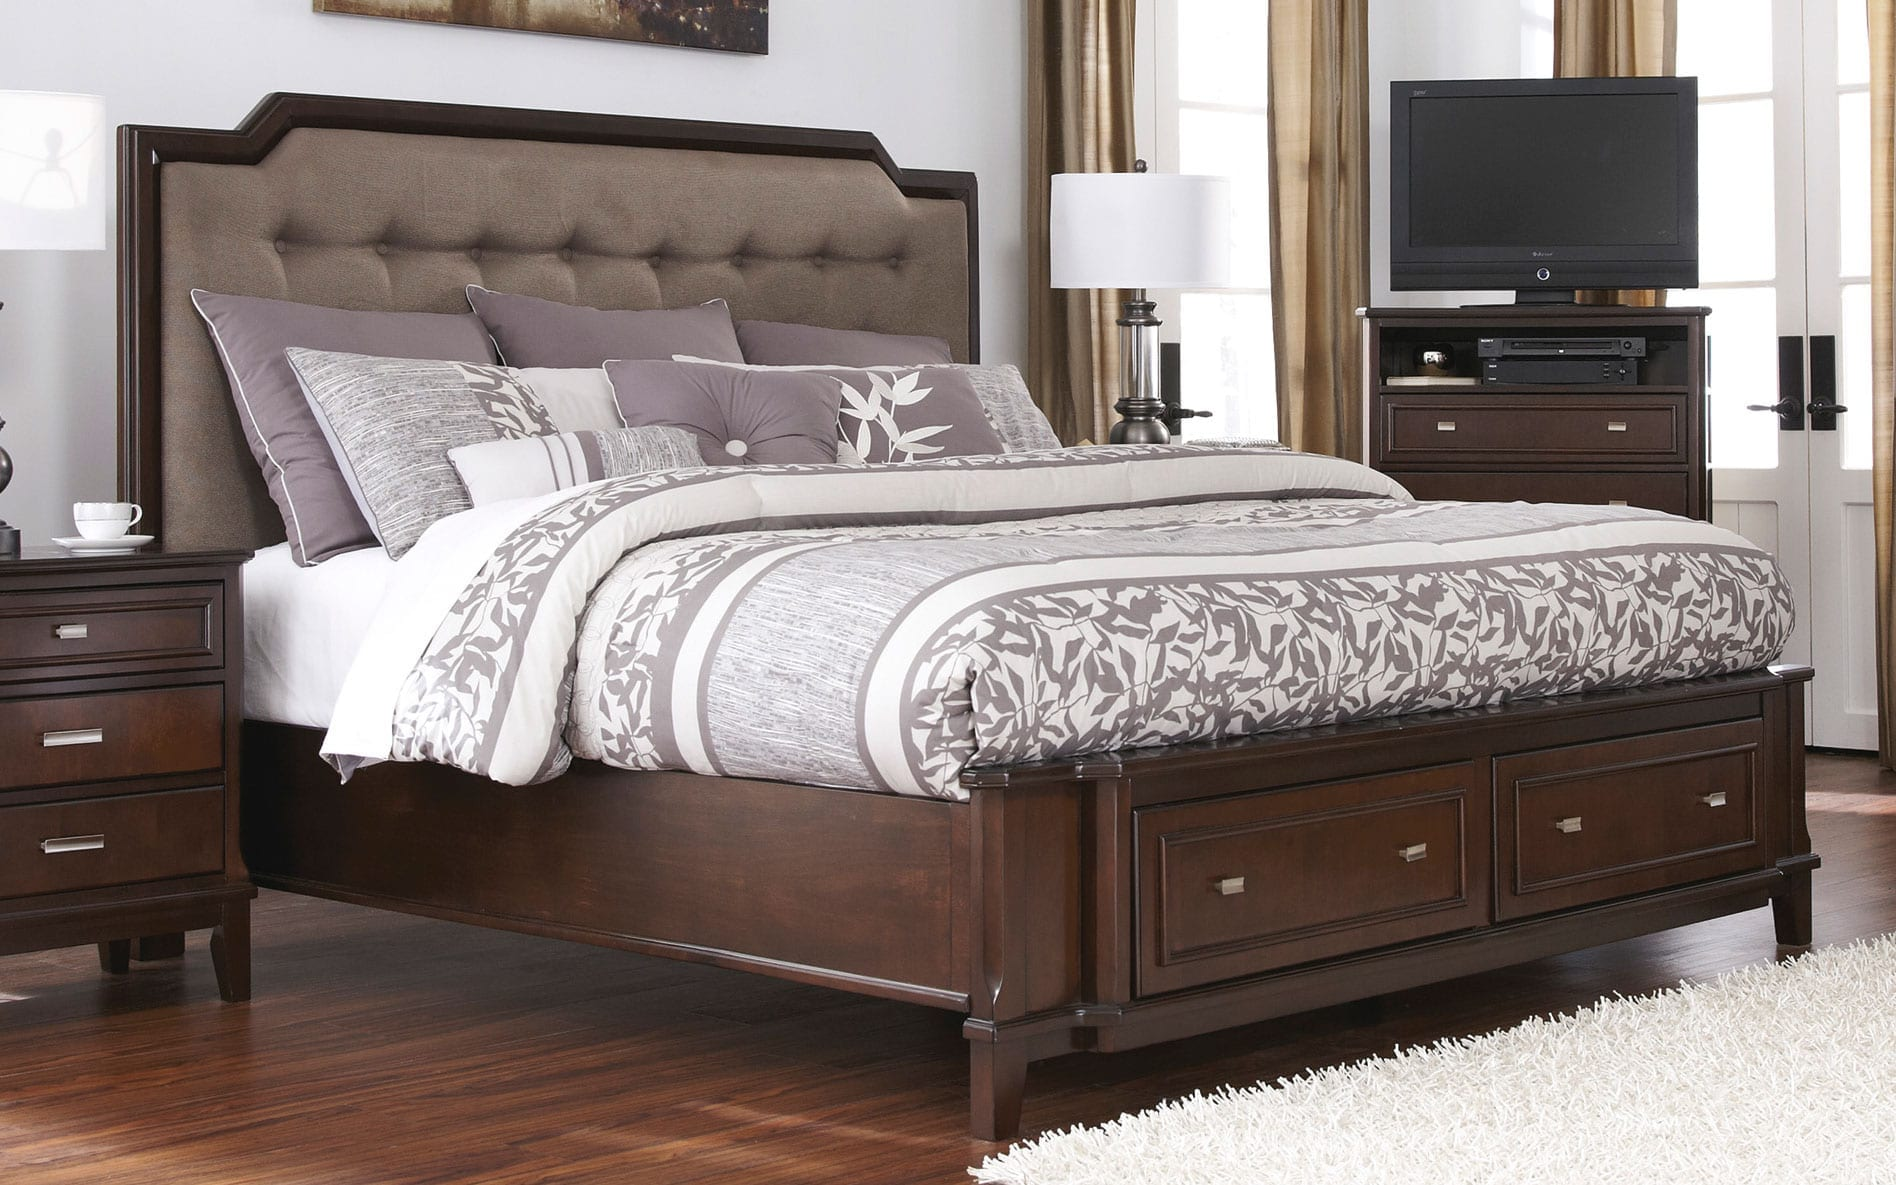 King Size Beds - Size Beds